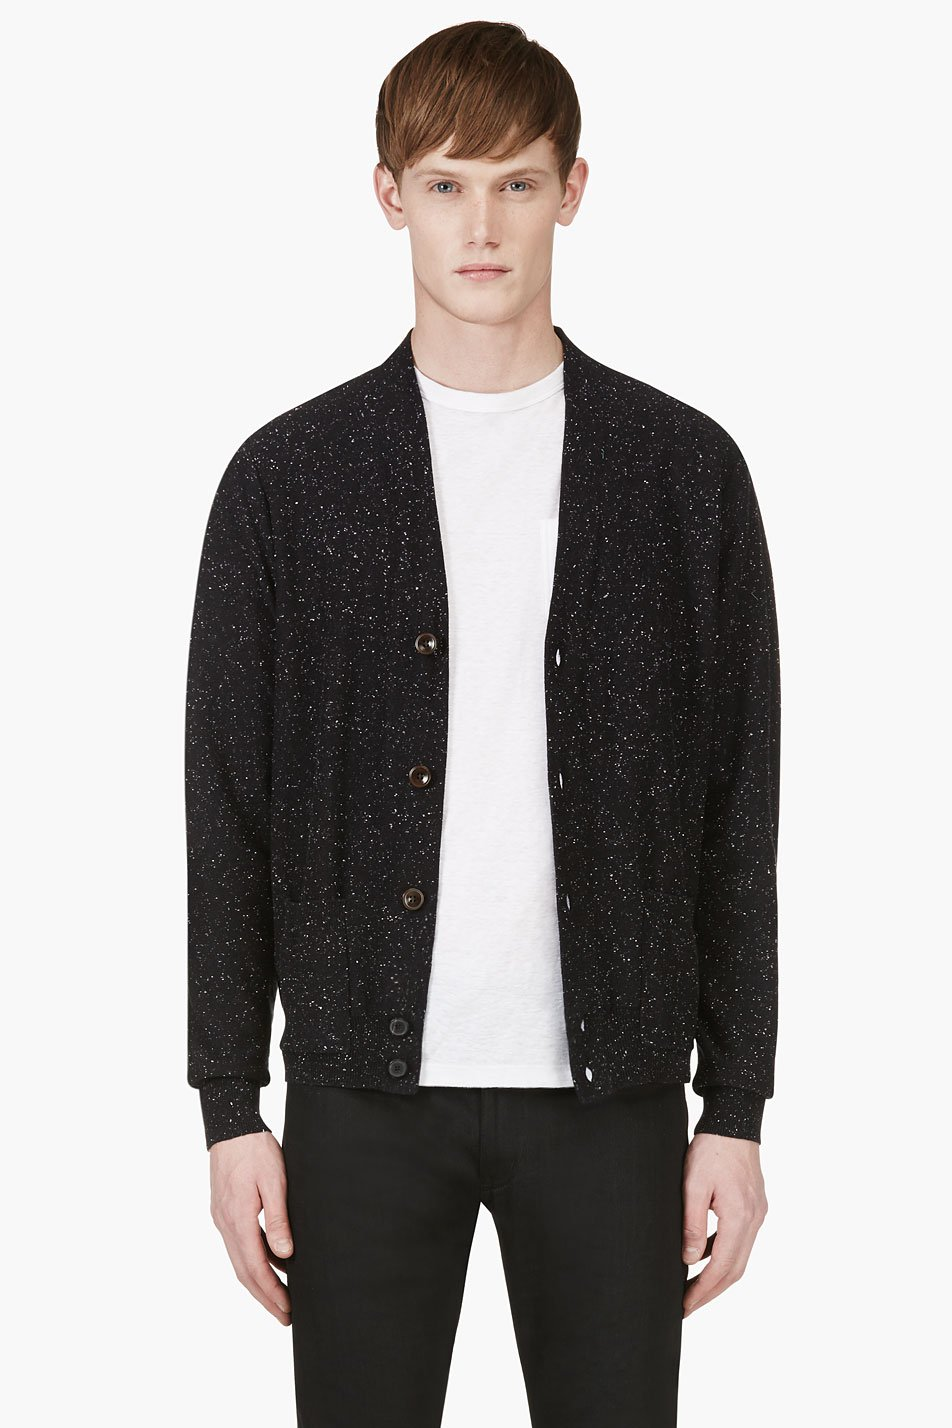 paul smith jeans black slub elbow patch cardigan